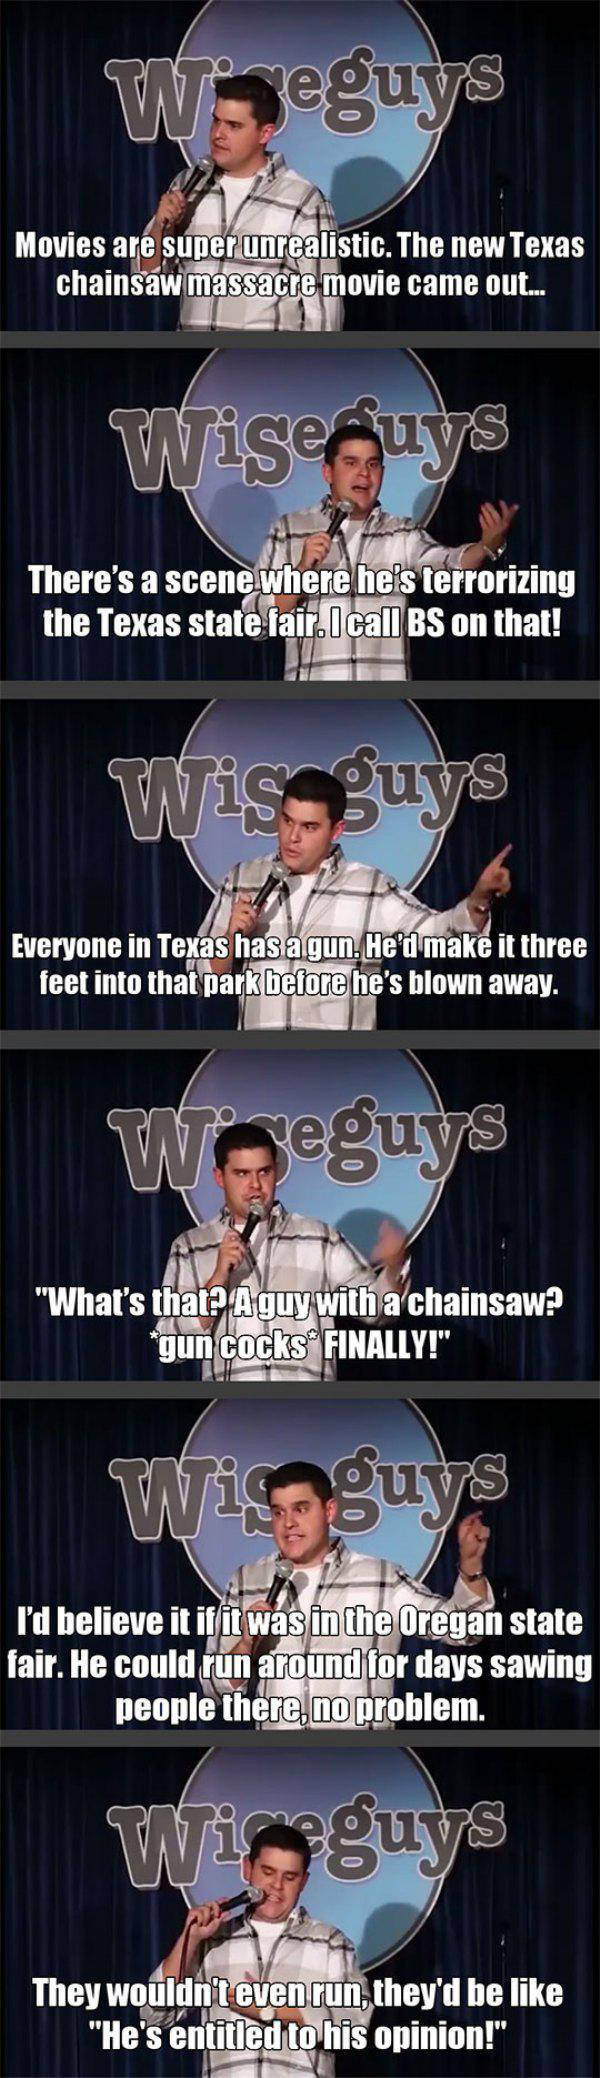 Comedians Who Couldn't Have Said It Better